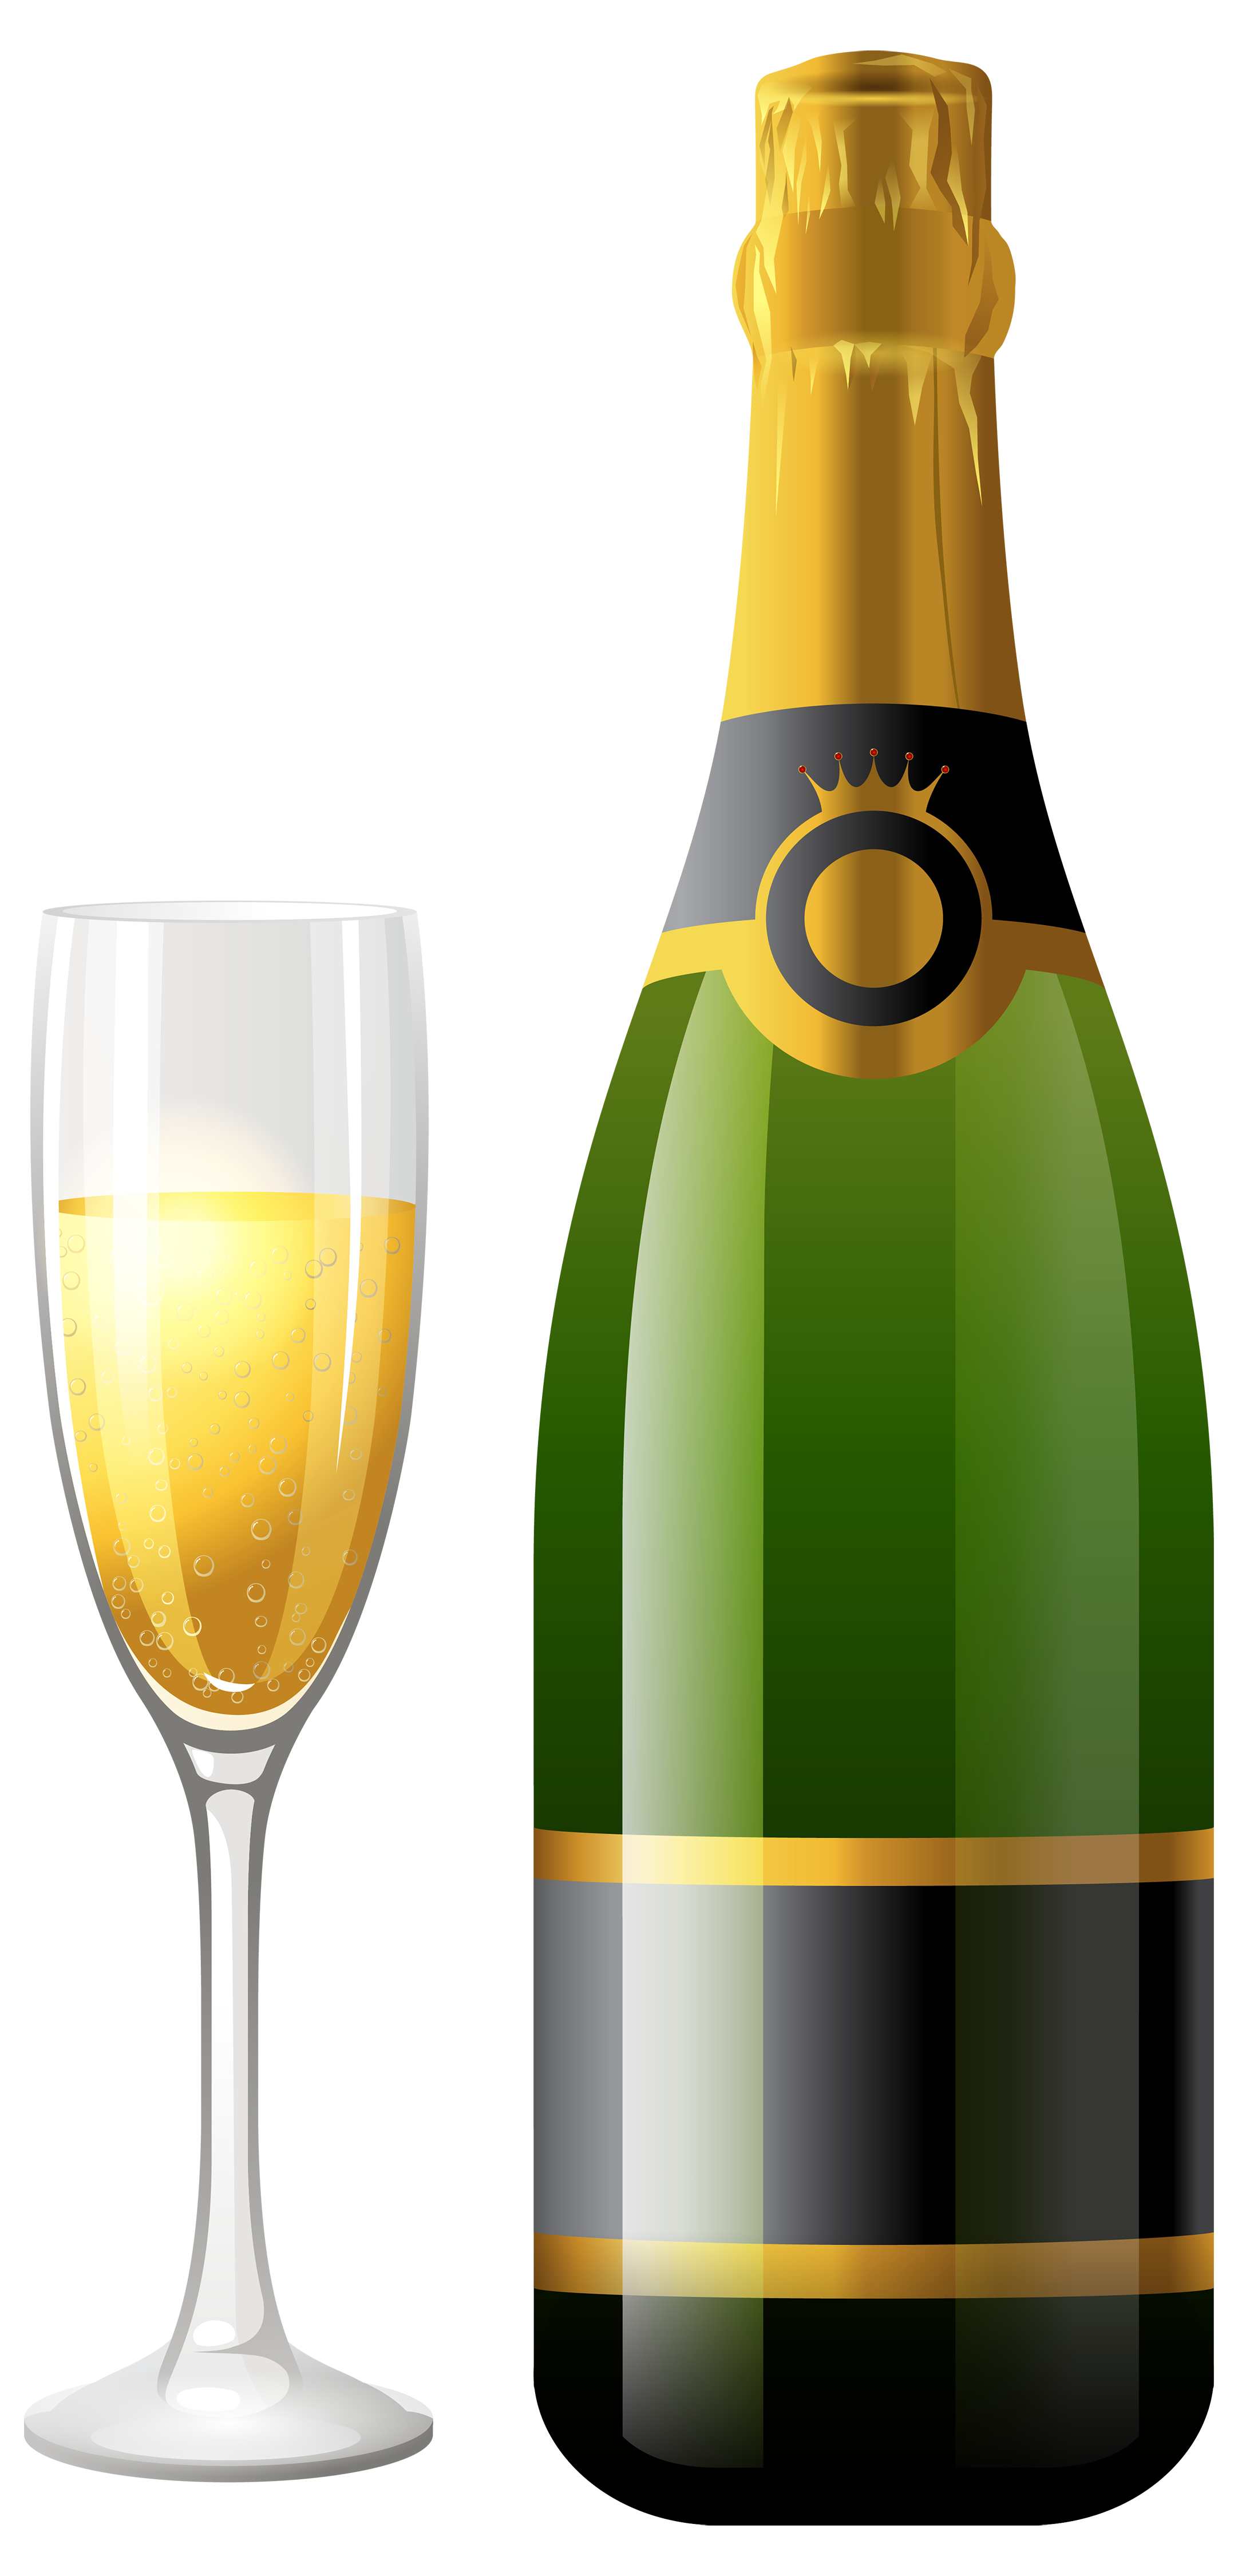 Bottles Png - Champagne Bottle with Glass PNG Clipart